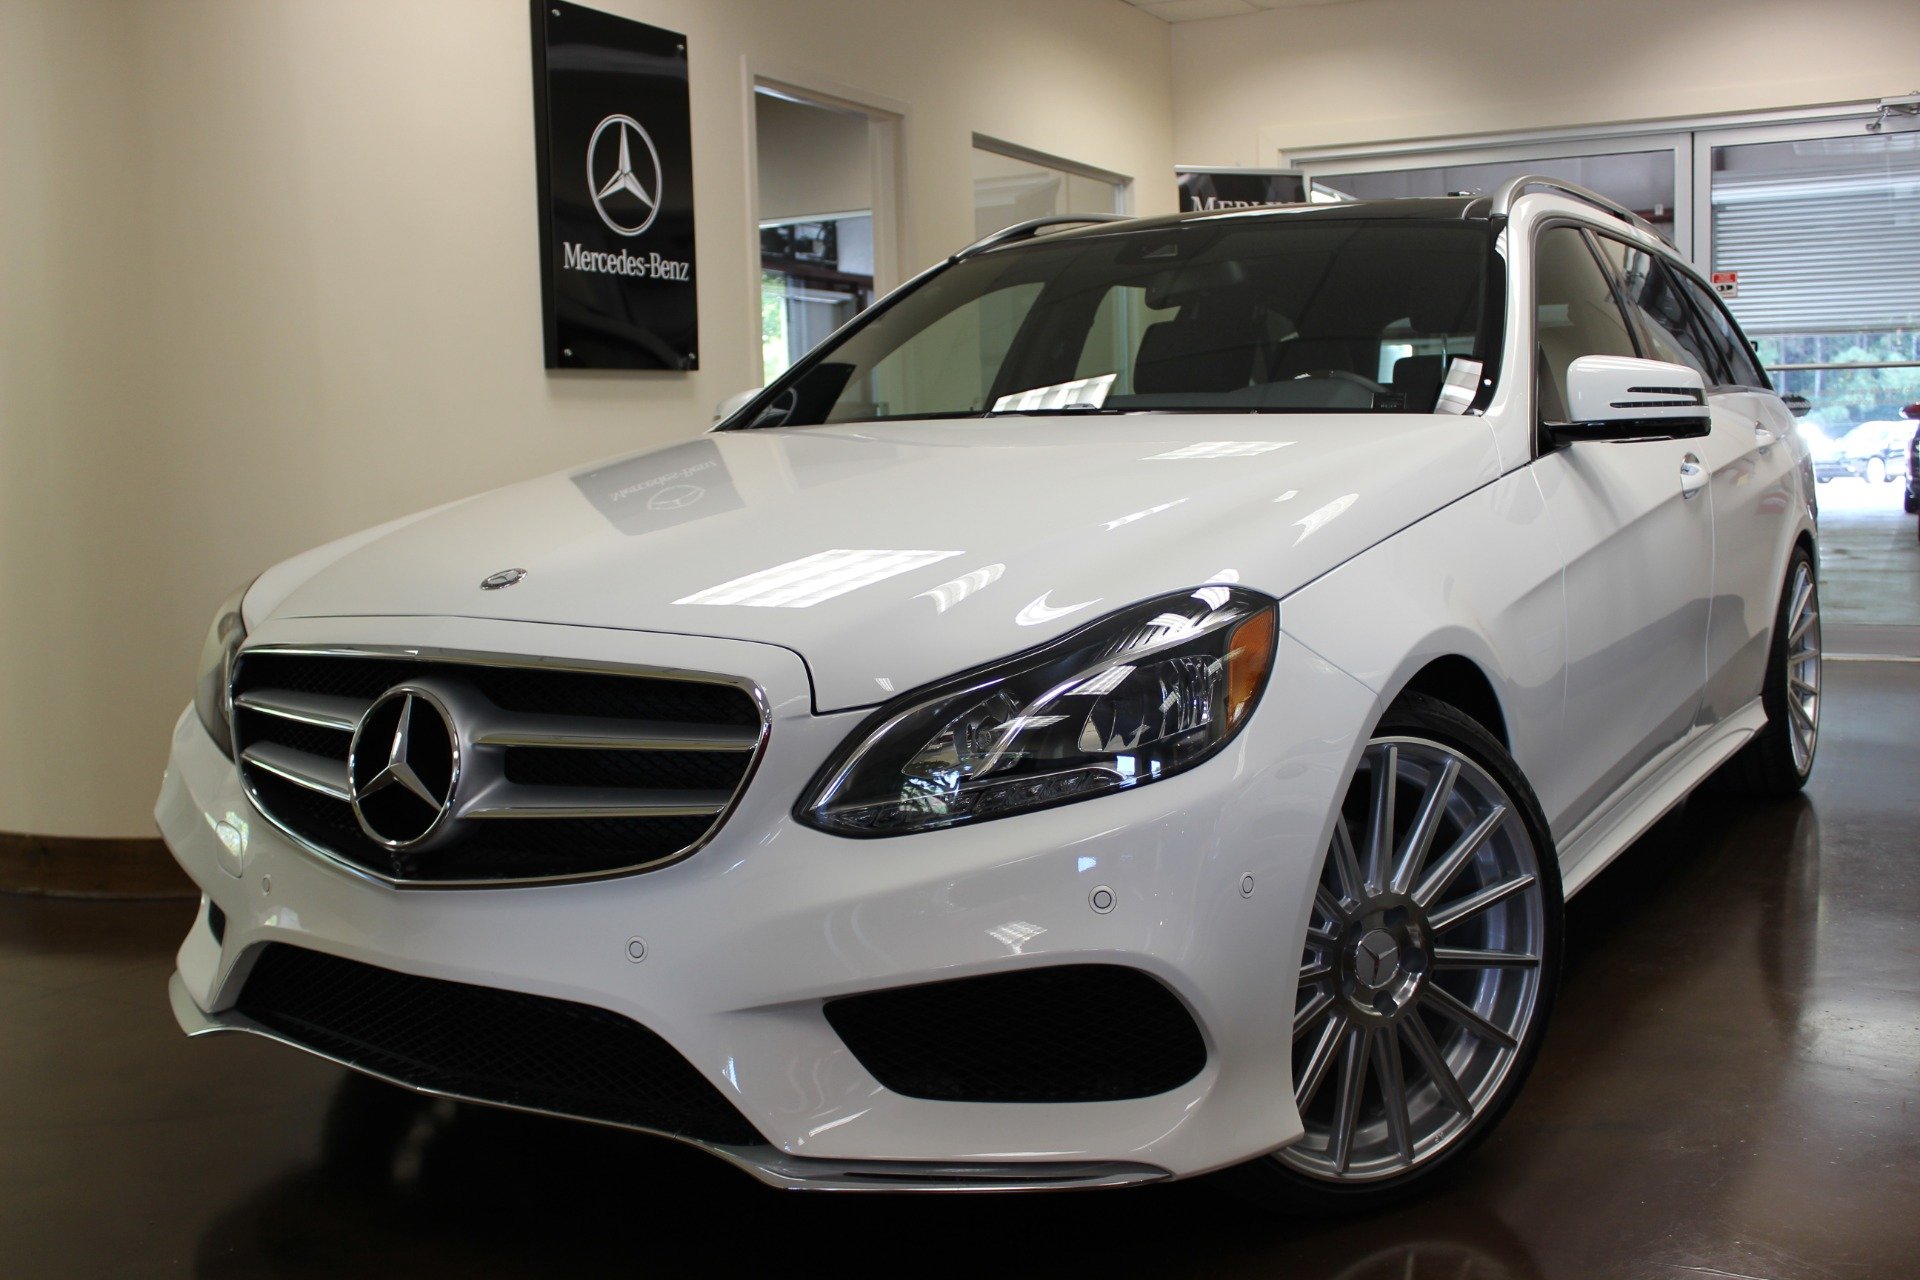 used 2015 mercedes benz e class stock p3223 ultra luxury car from merlin auto group. Black Bedroom Furniture Sets. Home Design Ideas